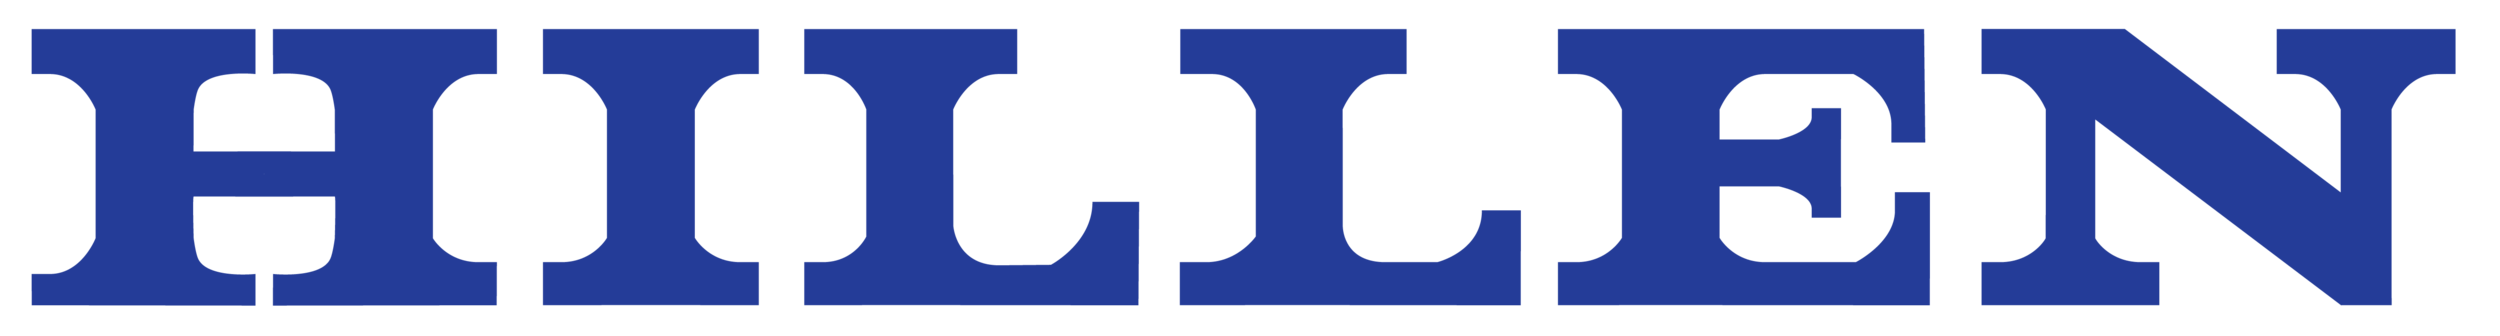 hillen-corporation-logo-blue.png